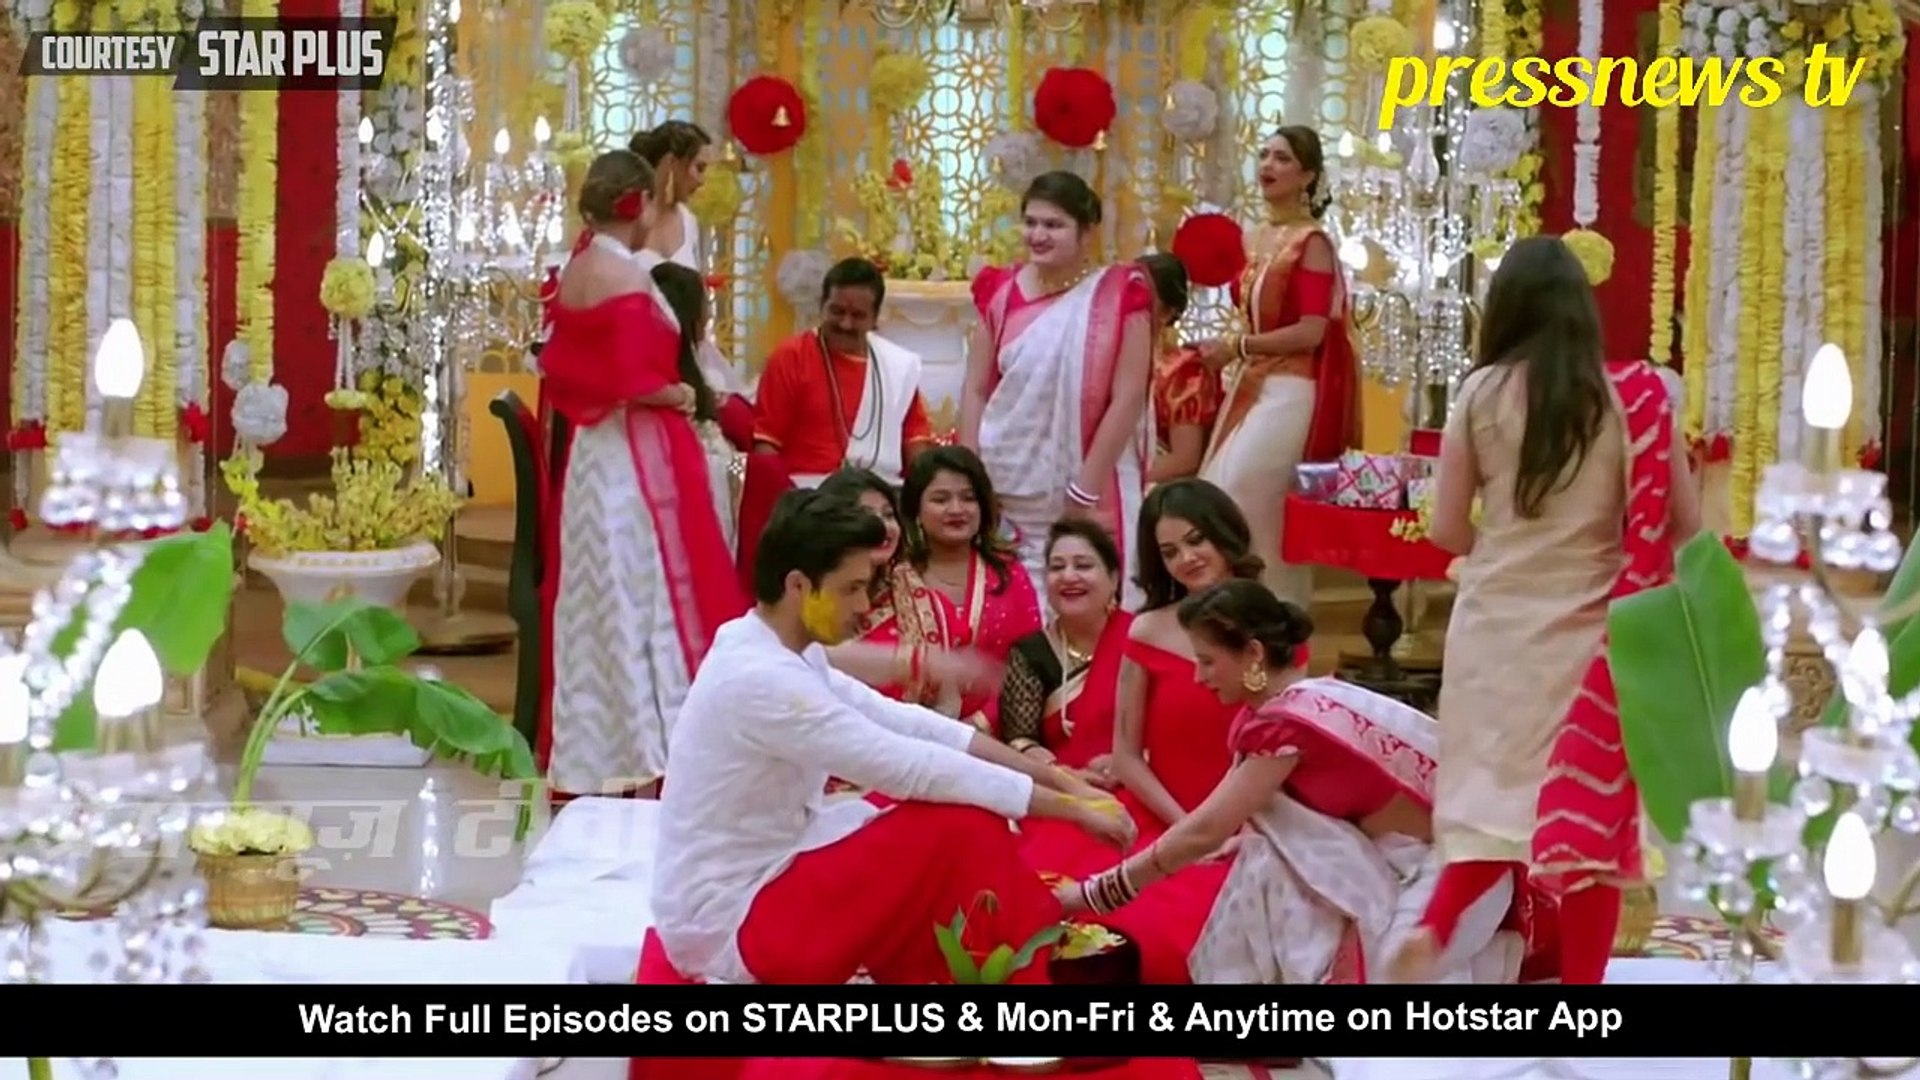 Kasautii Zindagii Kay - 1 March 2019 Video Update - Star Plus Kasauti Zindagi Ki Season 2